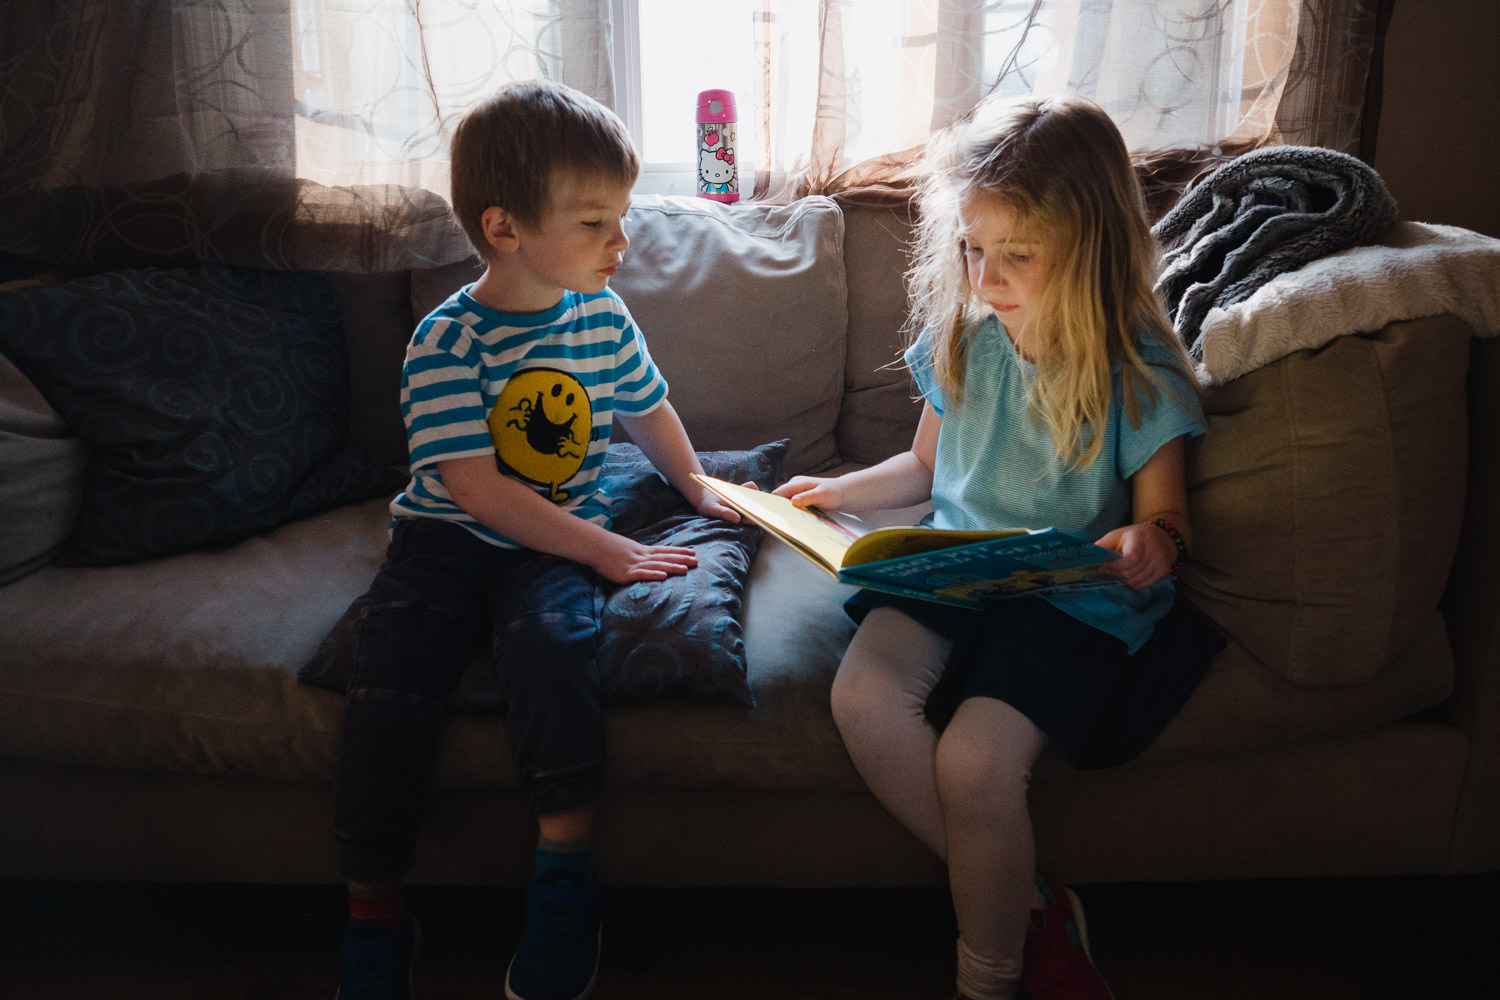 Two children read a book on a couch.